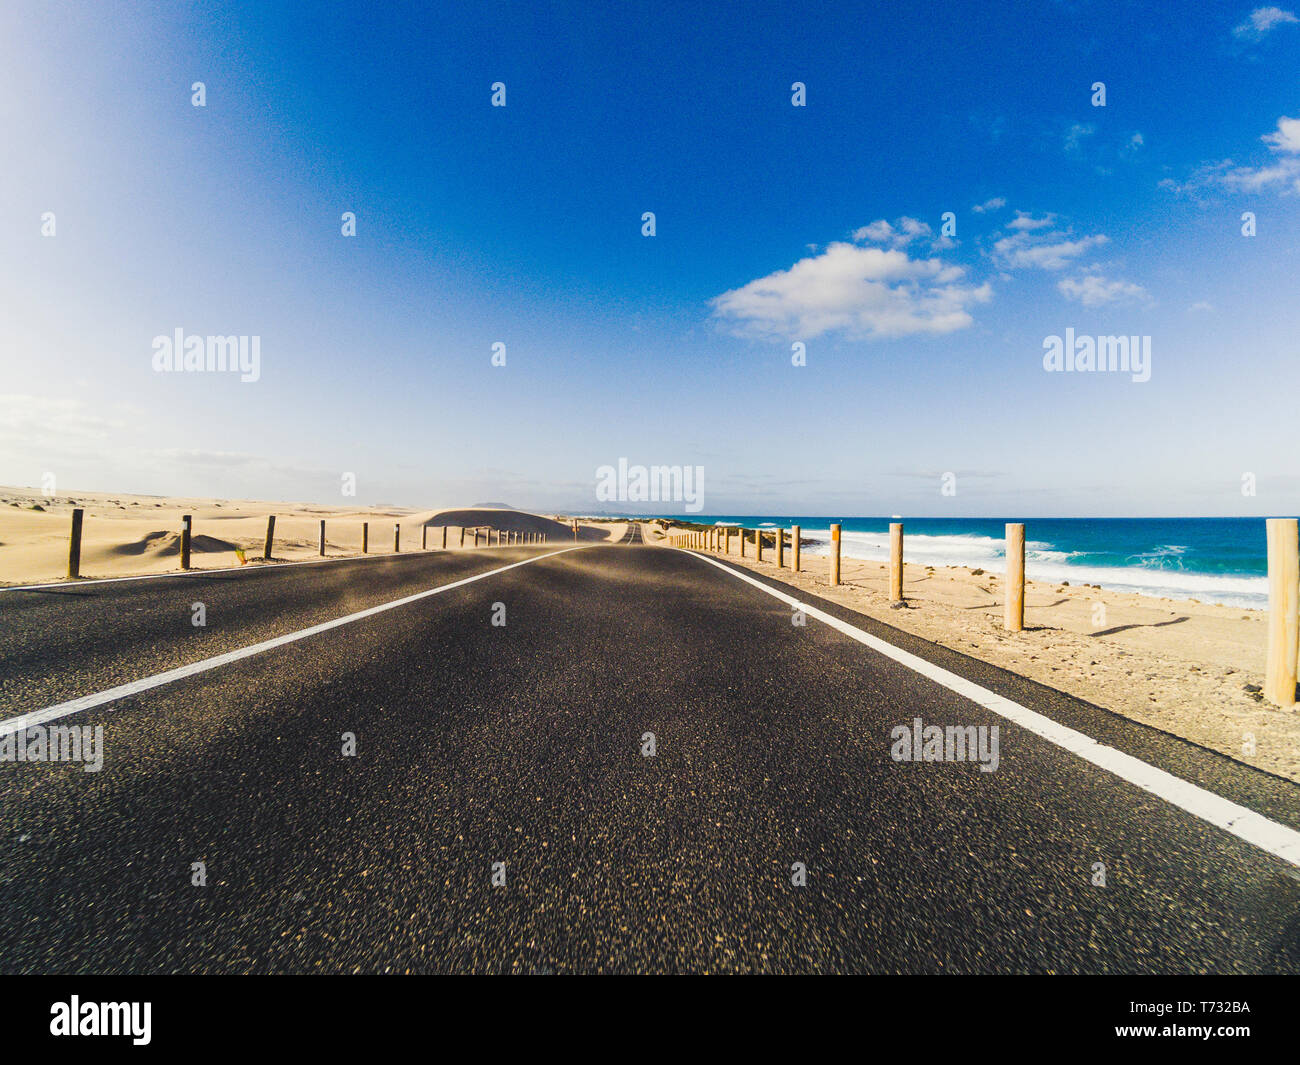 Long way road for travel car transportation concept with desert and beach on the side - sea water and blue clear beautiful sky in background - motion  Stock Photo